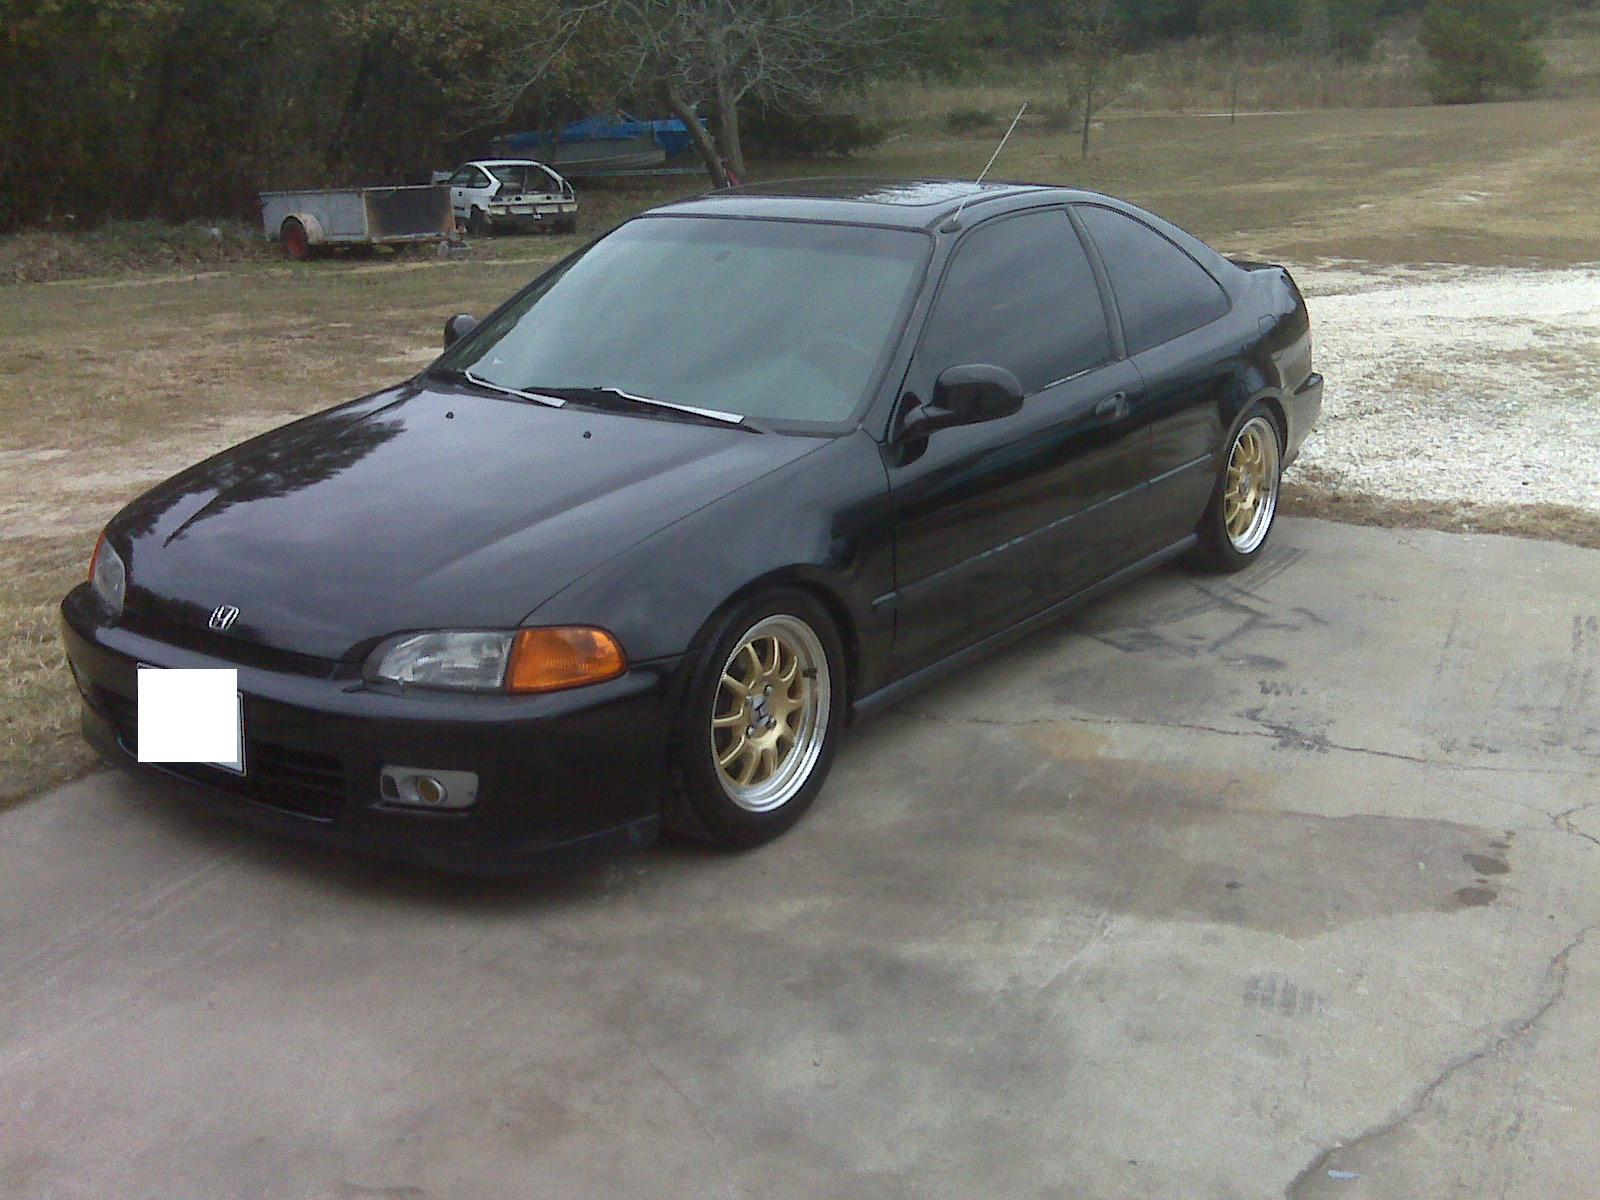 j390s 1995 honda civicex coupe 2d specs photos modification info at cardomain. Black Bedroom Furniture Sets. Home Design Ideas